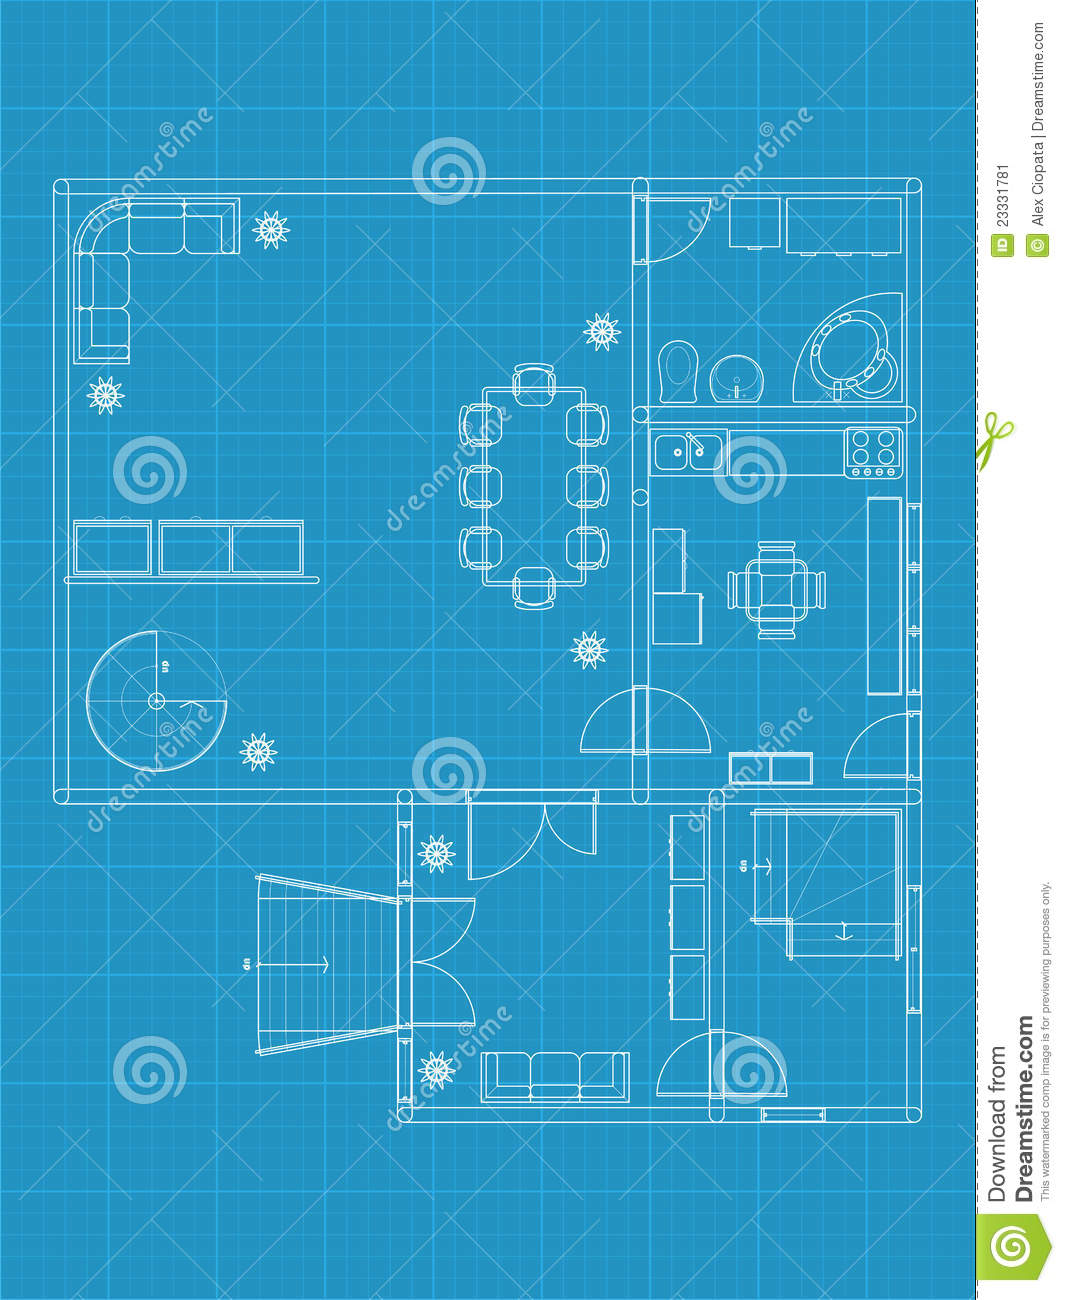 Building blueprints stock image image 23331781 Blueprint builder free